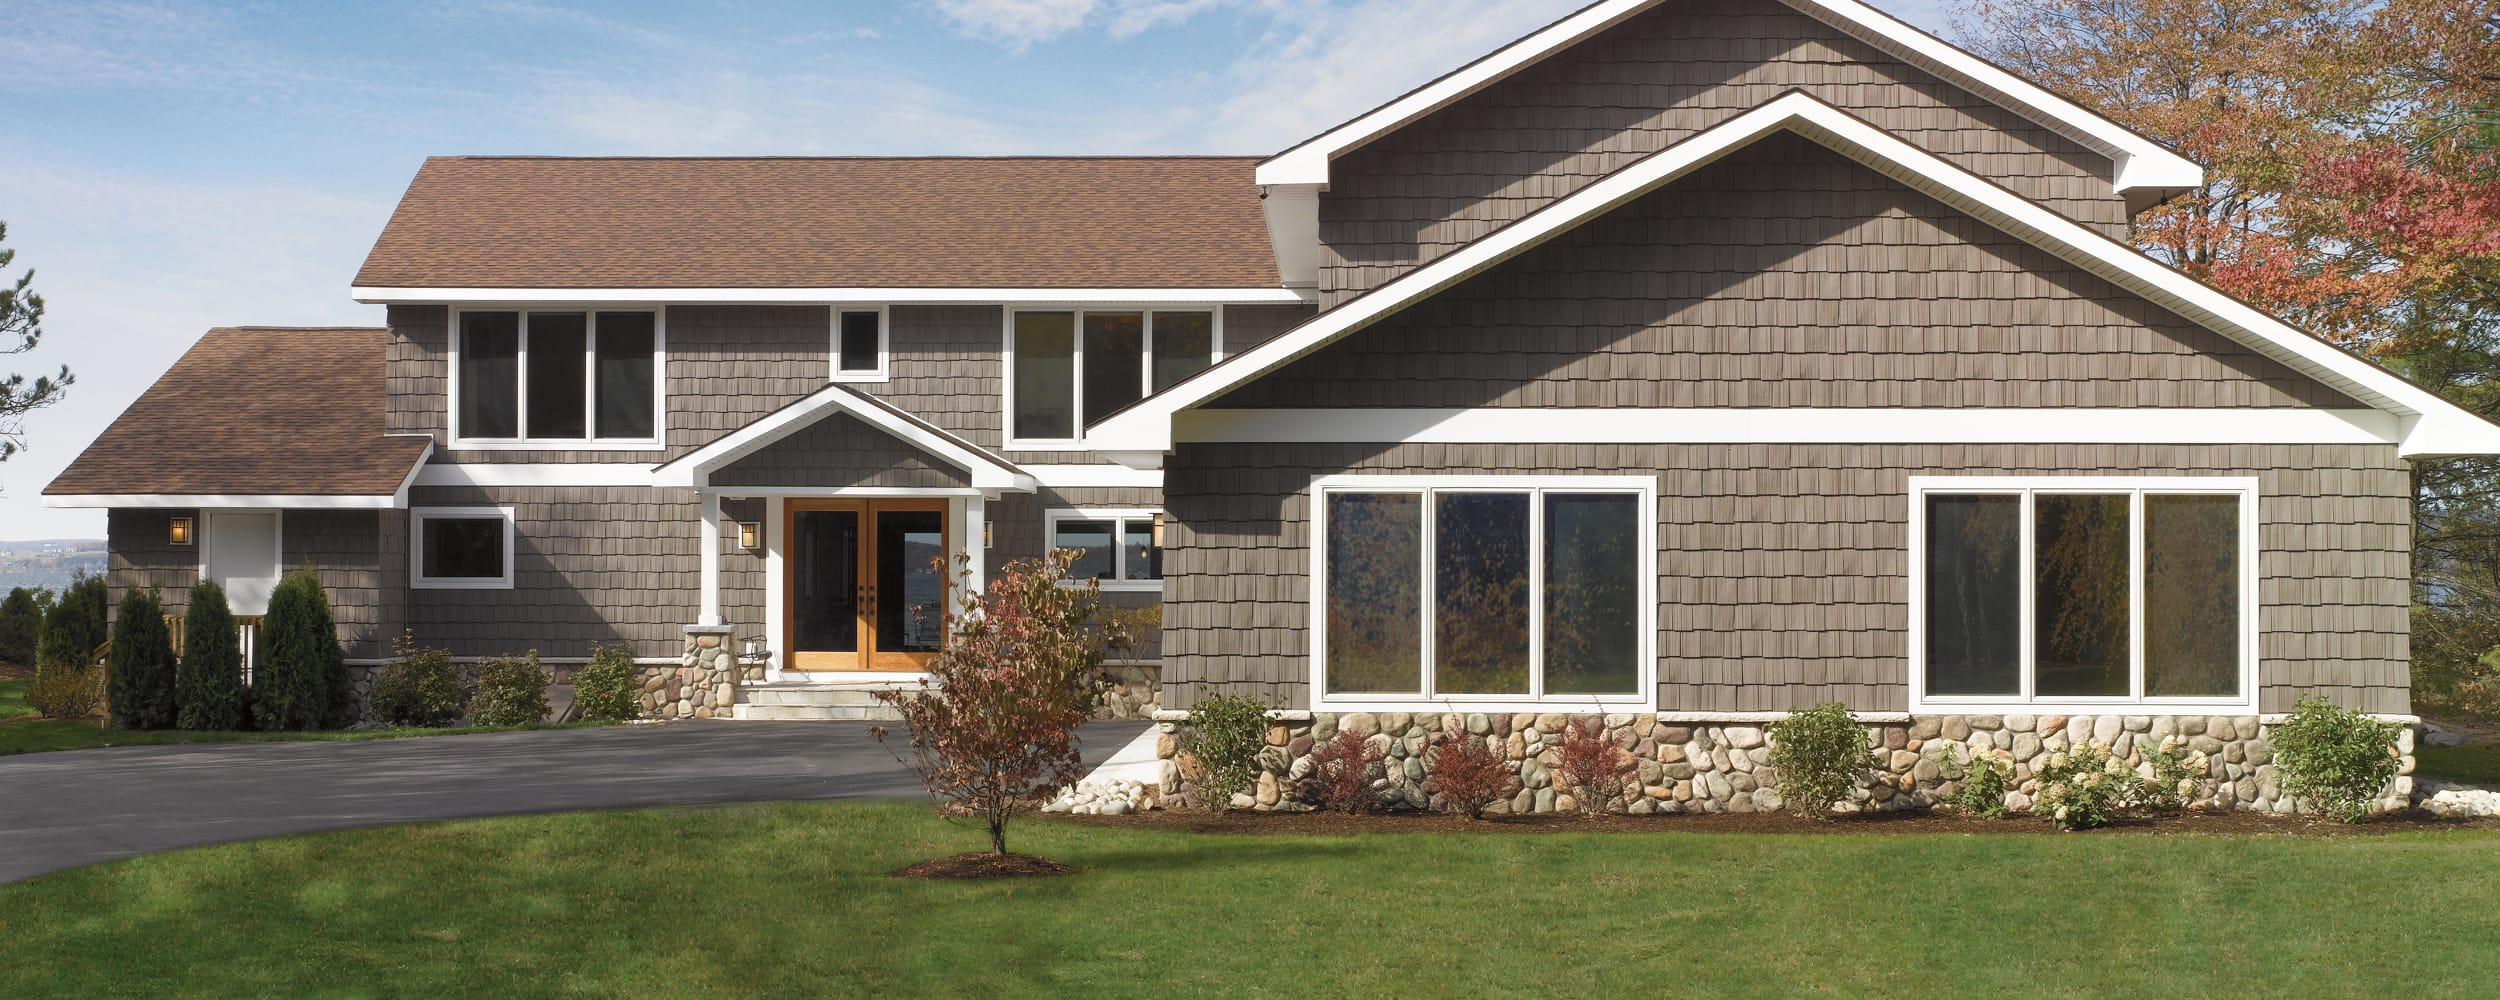 Community Profiles Vinyl Siding Case Studies Vsi